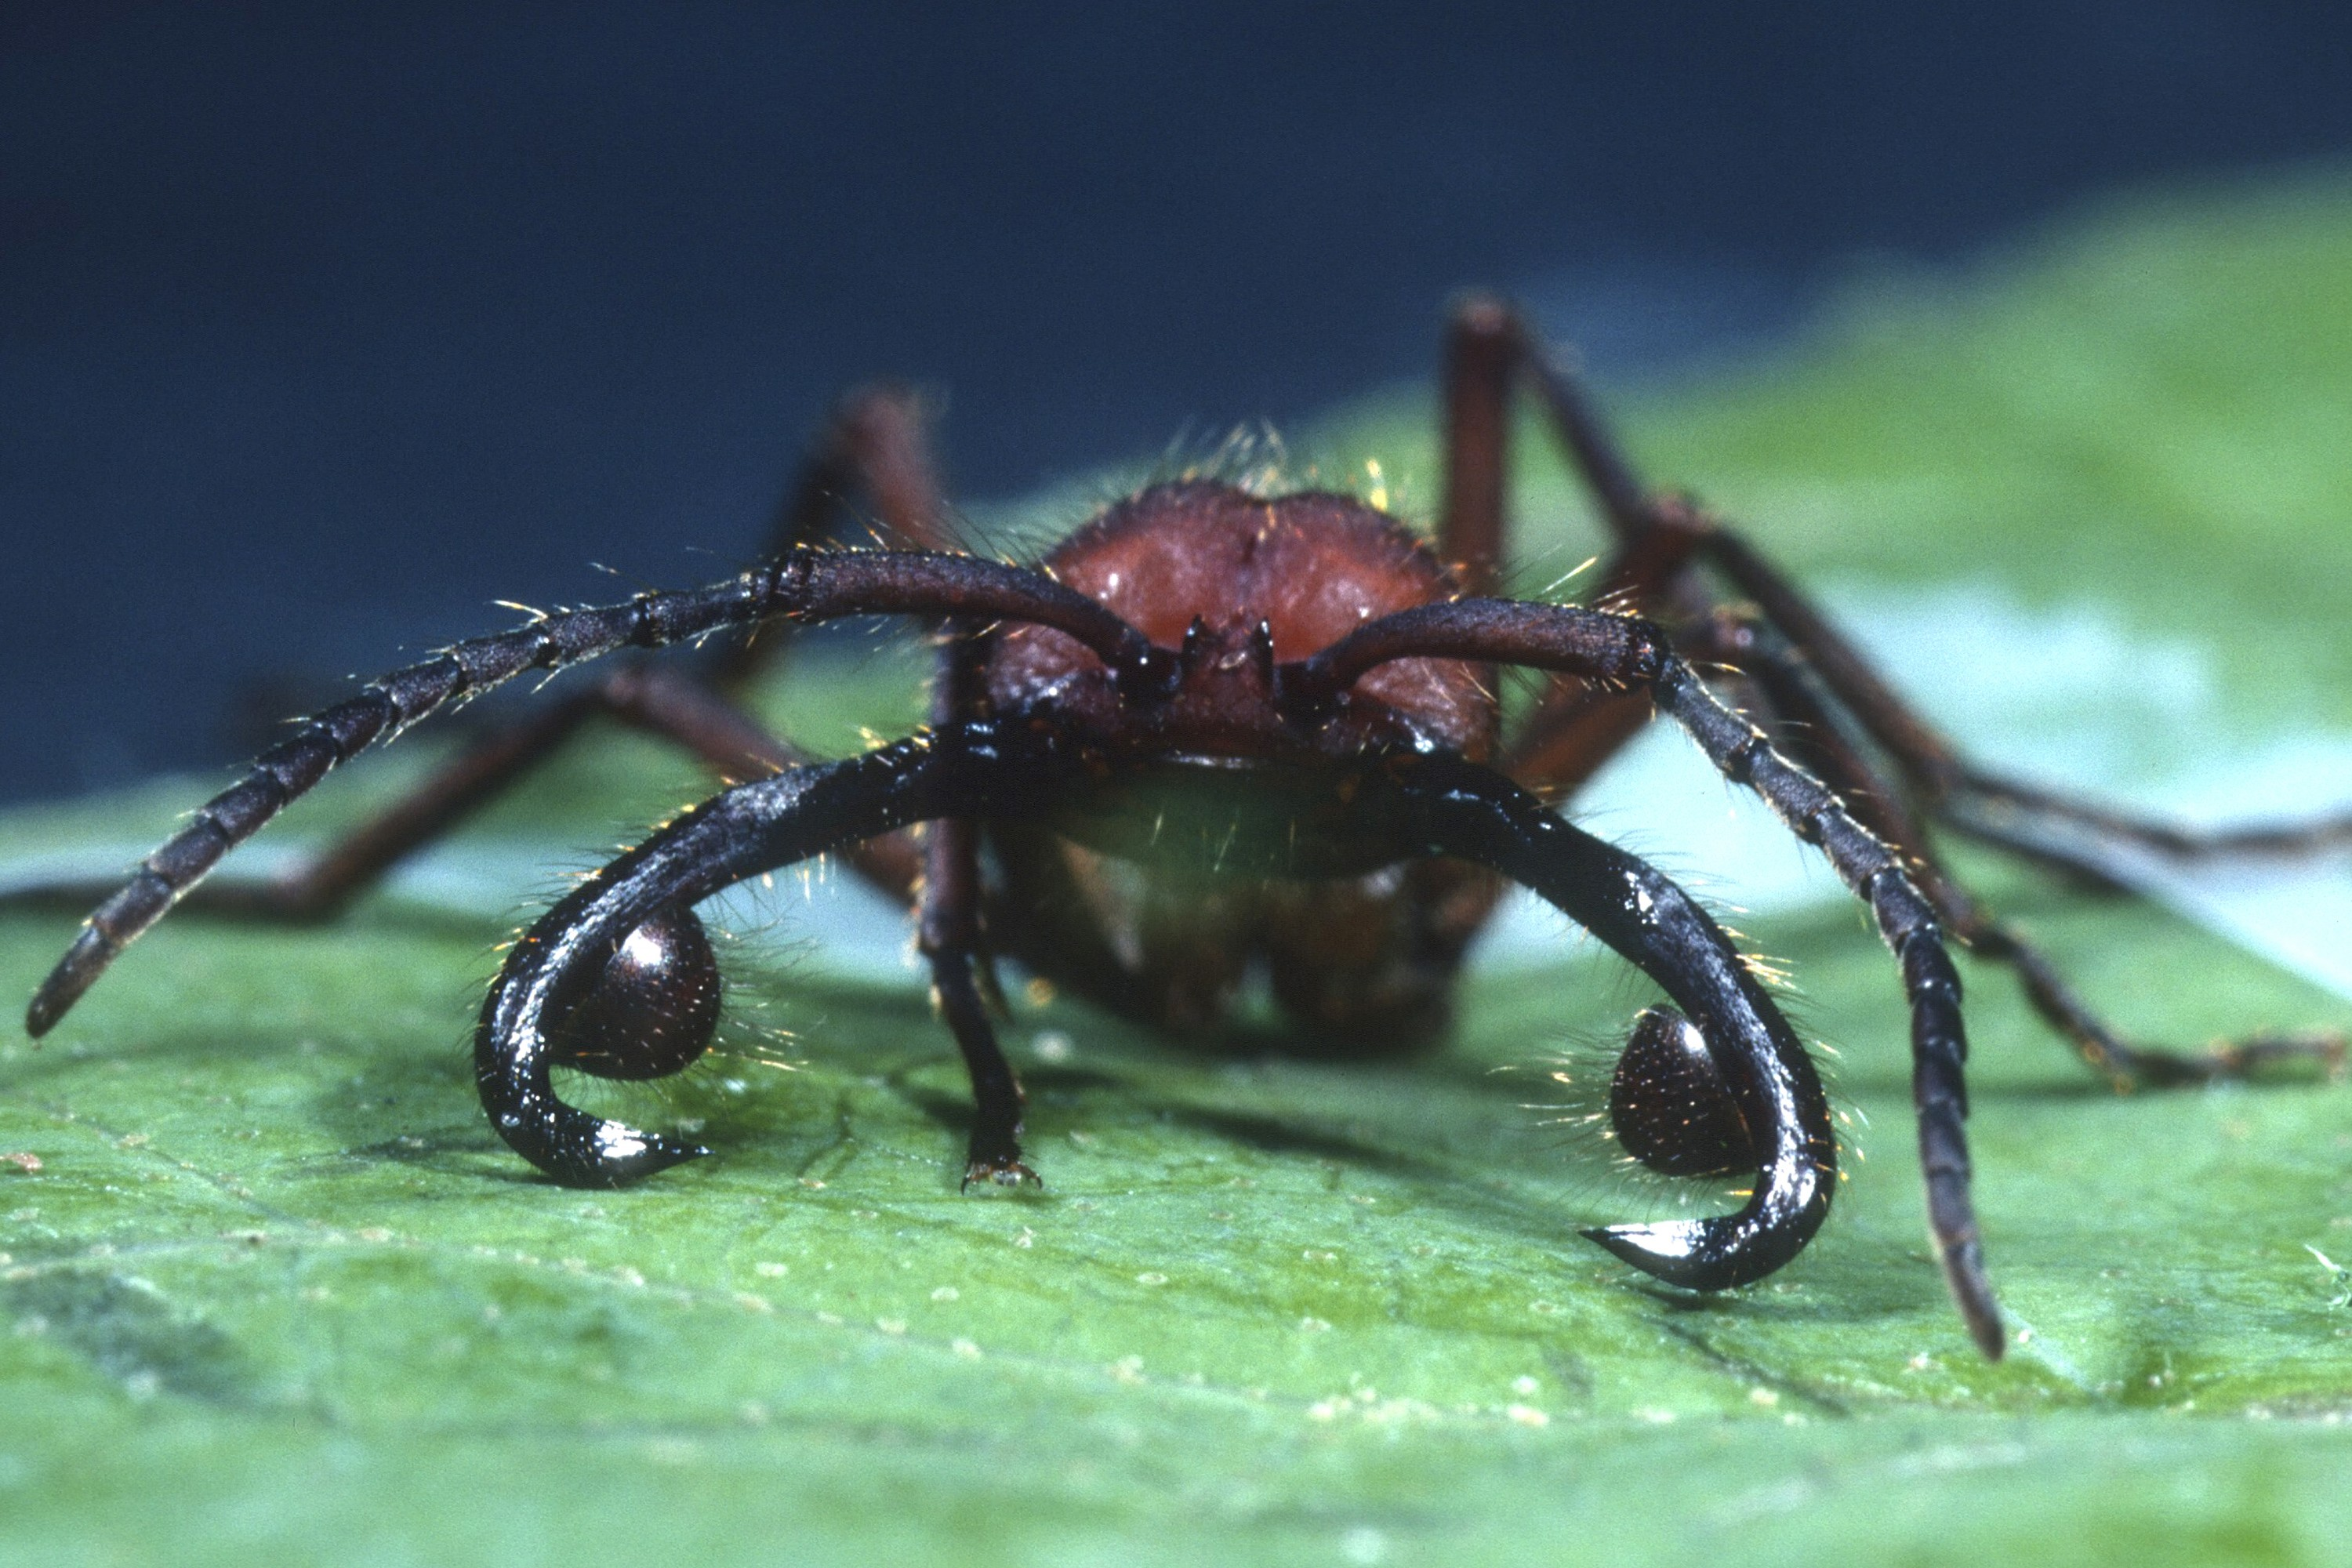 Mites on ant mandible. (Carl Rettenmeyer/UConn Photo)